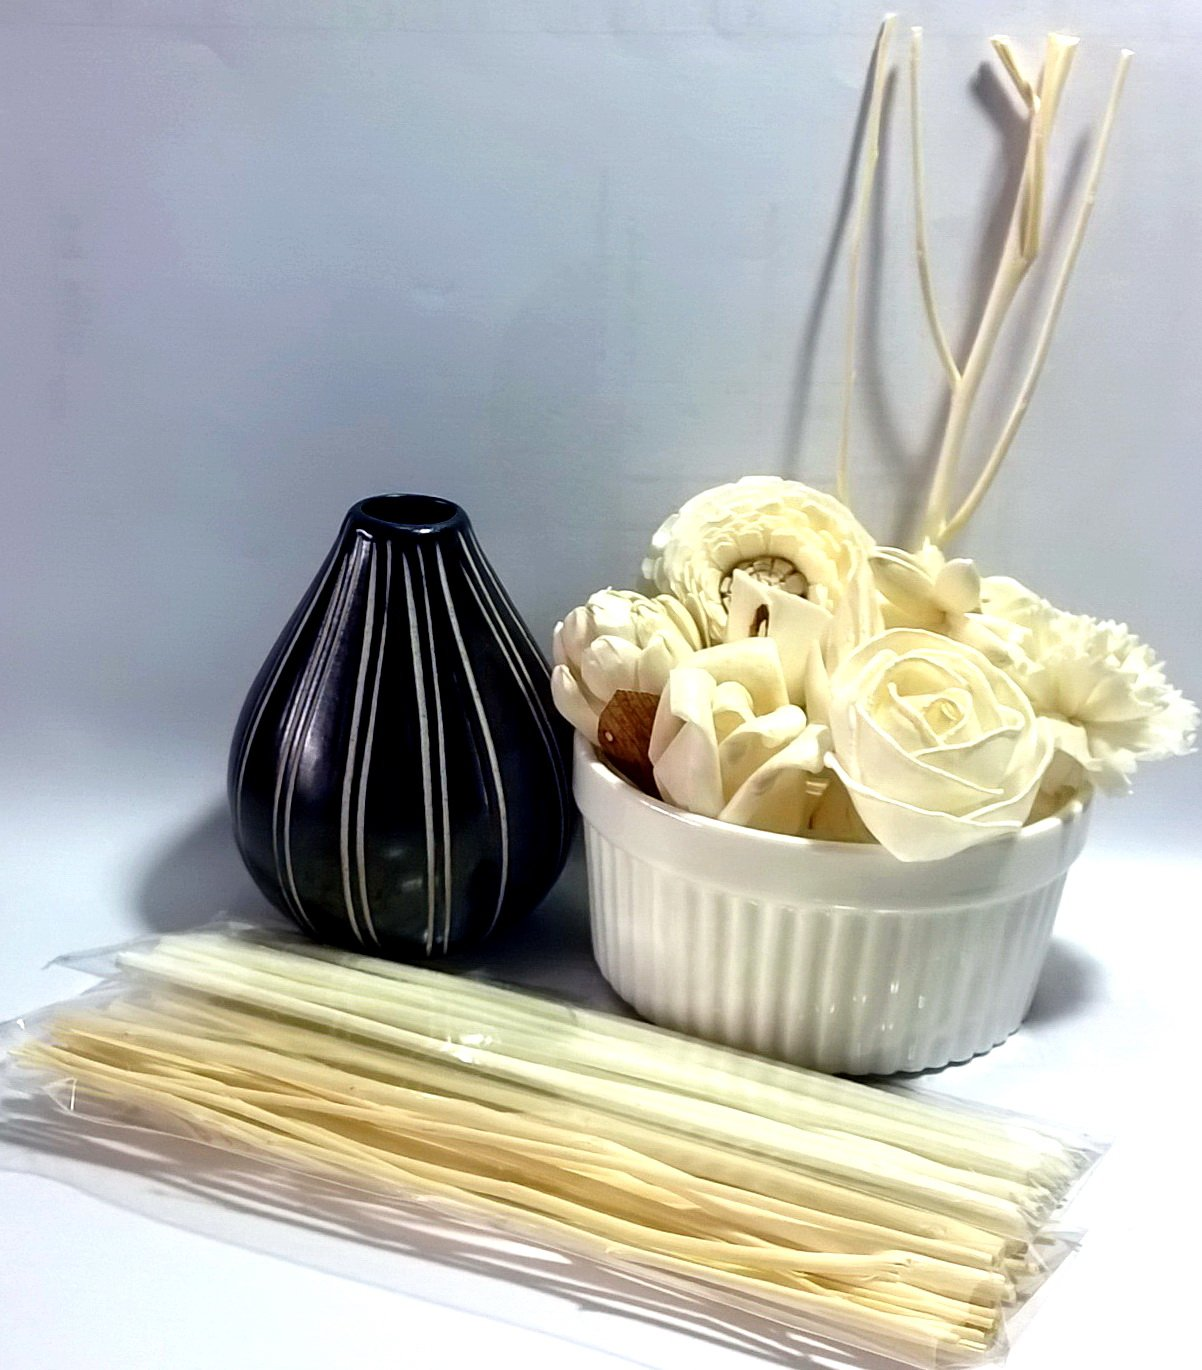 Fulllight Set of Natural Material Sesbania Pine and Hyacinth Wood Flower Diffuser 10 Pieces, Reed Diffuser Rattan and Sesame Wood & Handmade Ceramic vases for Aroma diffused or Decorative (FL09)